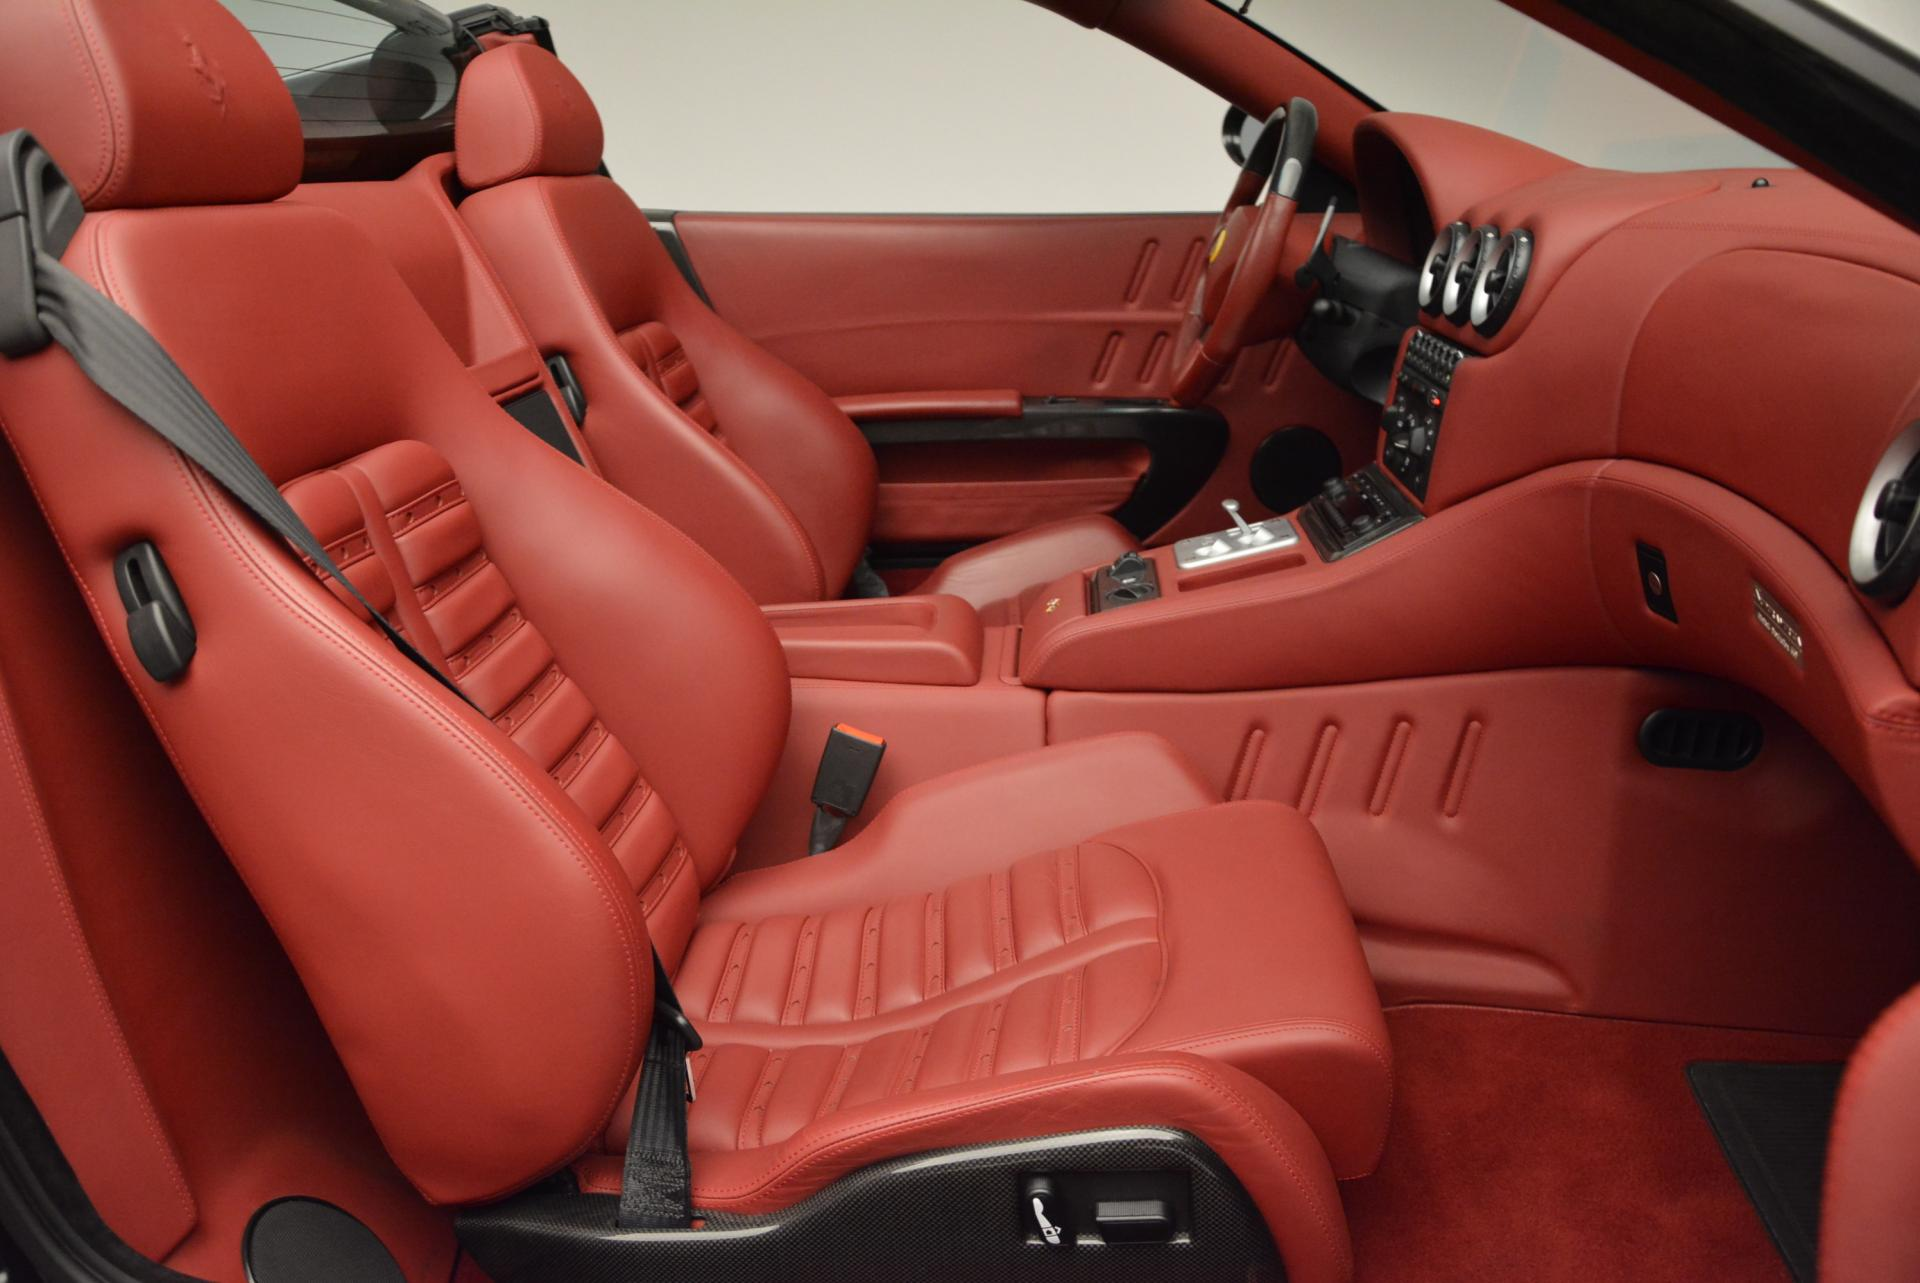 Used 2005 Ferrari Superamerica  For Sale In Greenwich, CT. Alfa Romeo of Greenwich, 4306 125_p30